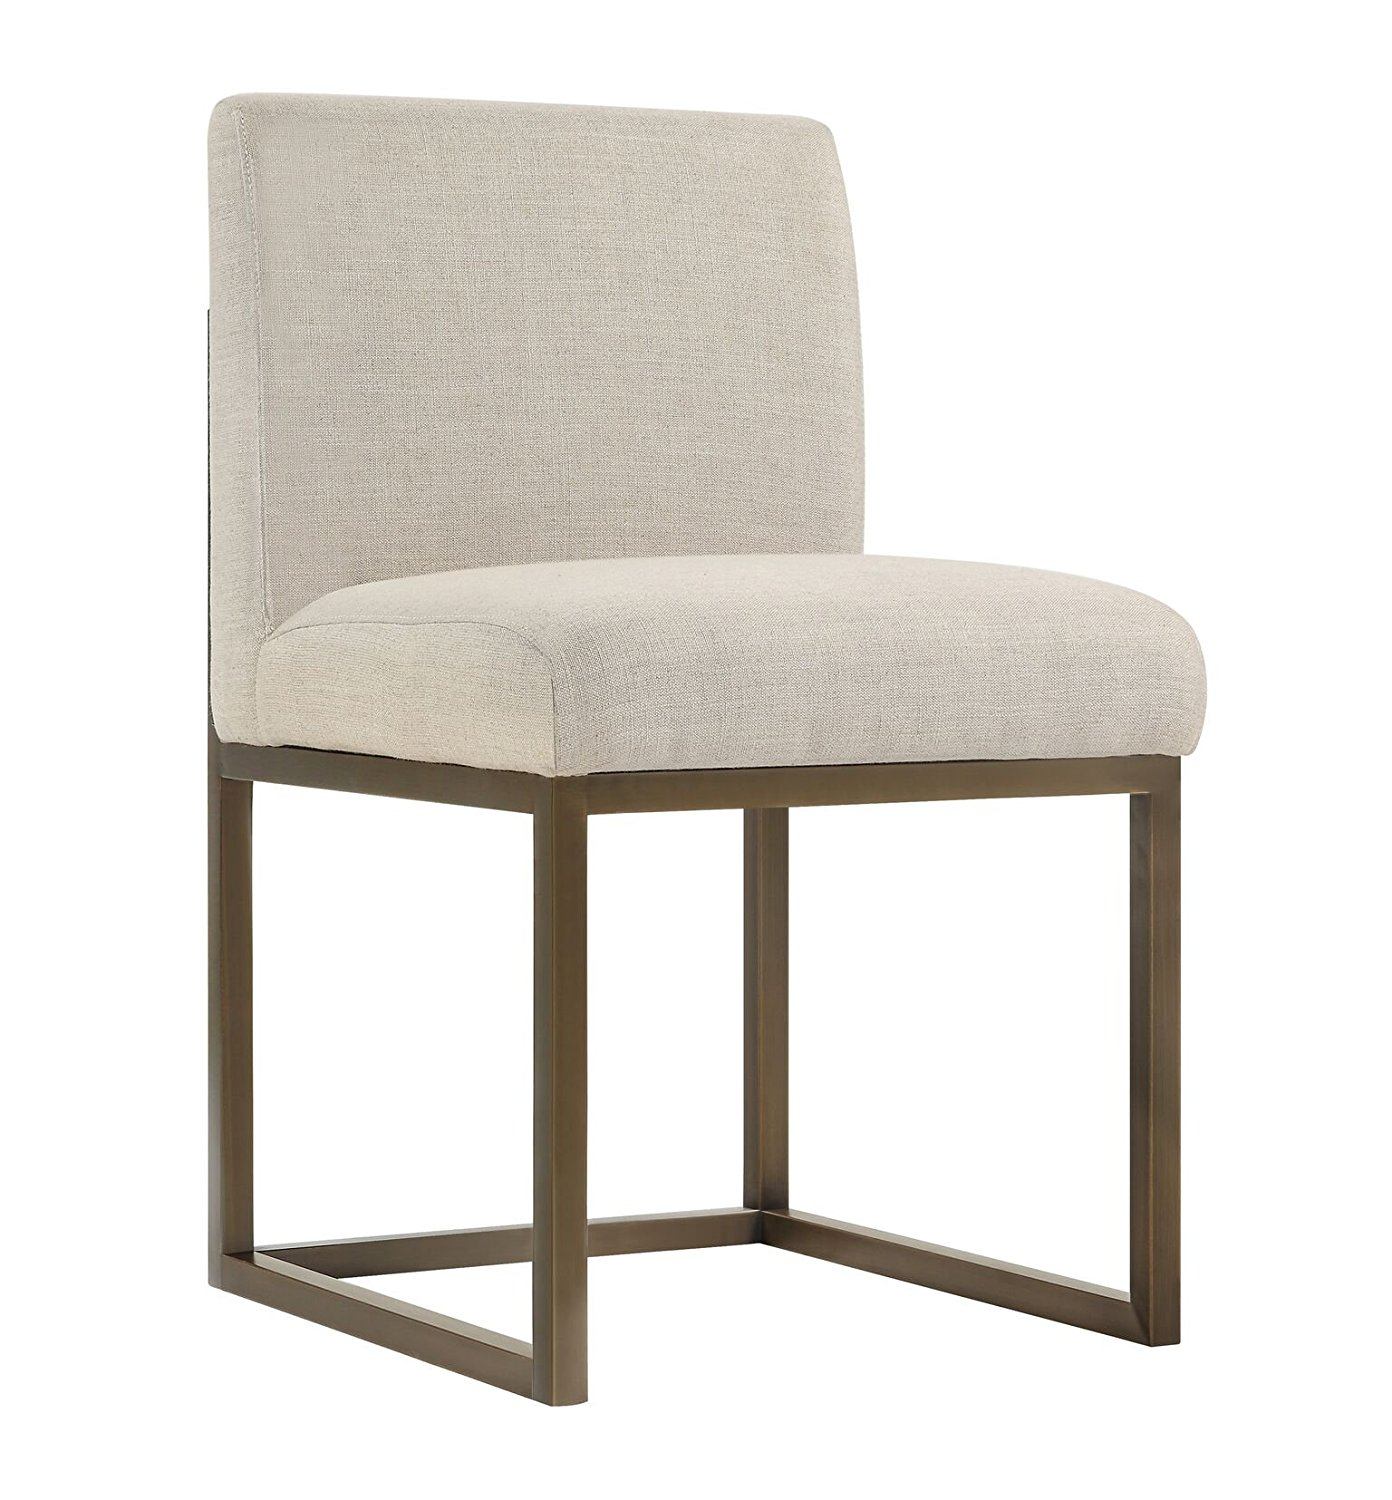 Tov Furniture The Haute Collection Modern Linen Fabric Upholstered Bronze Finish Stainless Steel Metal Dining Chair, Beige